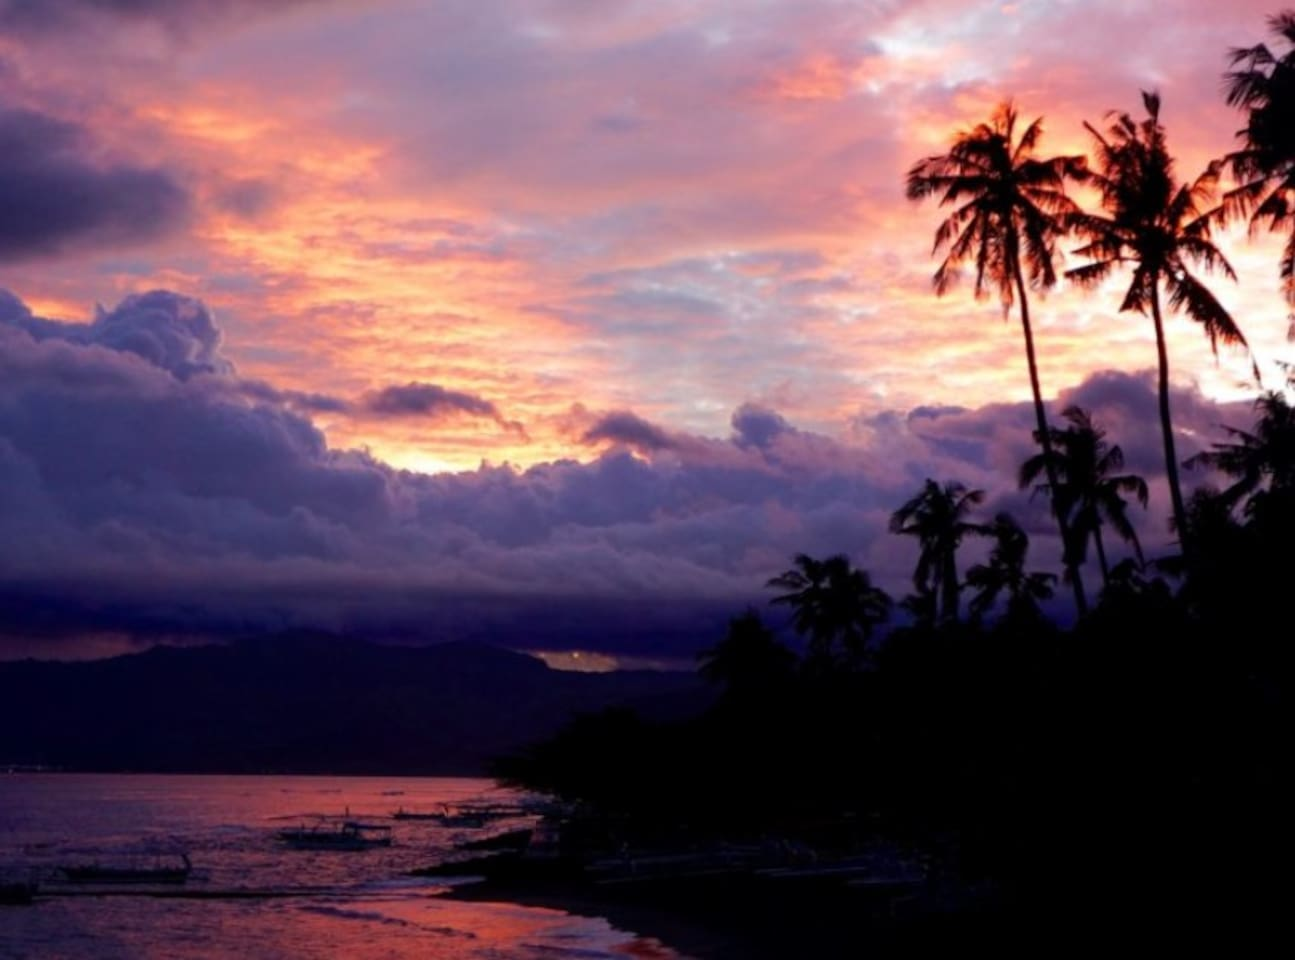 Dramatic Sunset to end a special day in magical East Bali